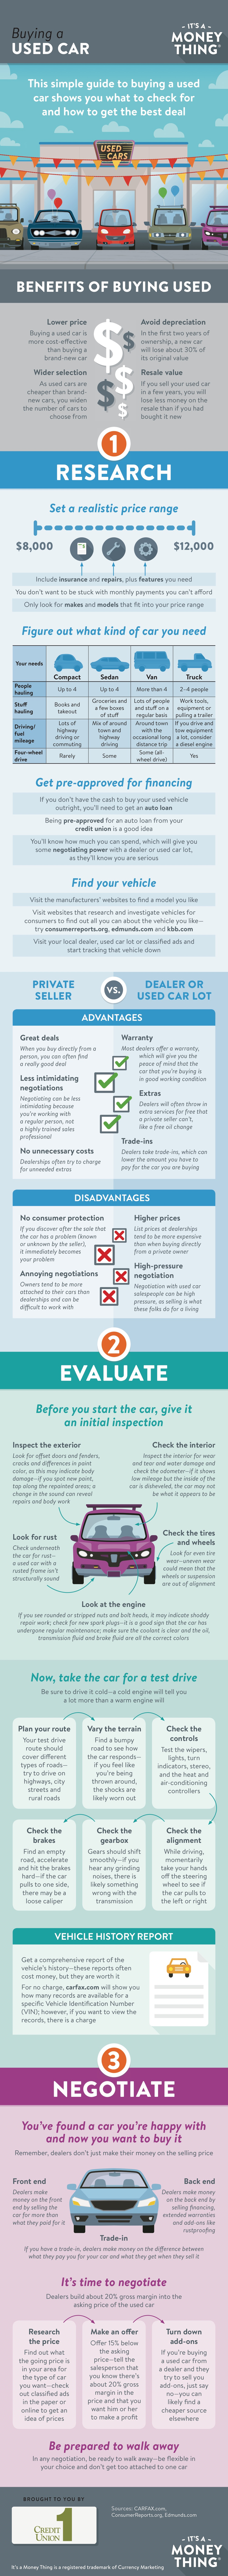 CU1 How to Buy A Used Car Infographic.jpg